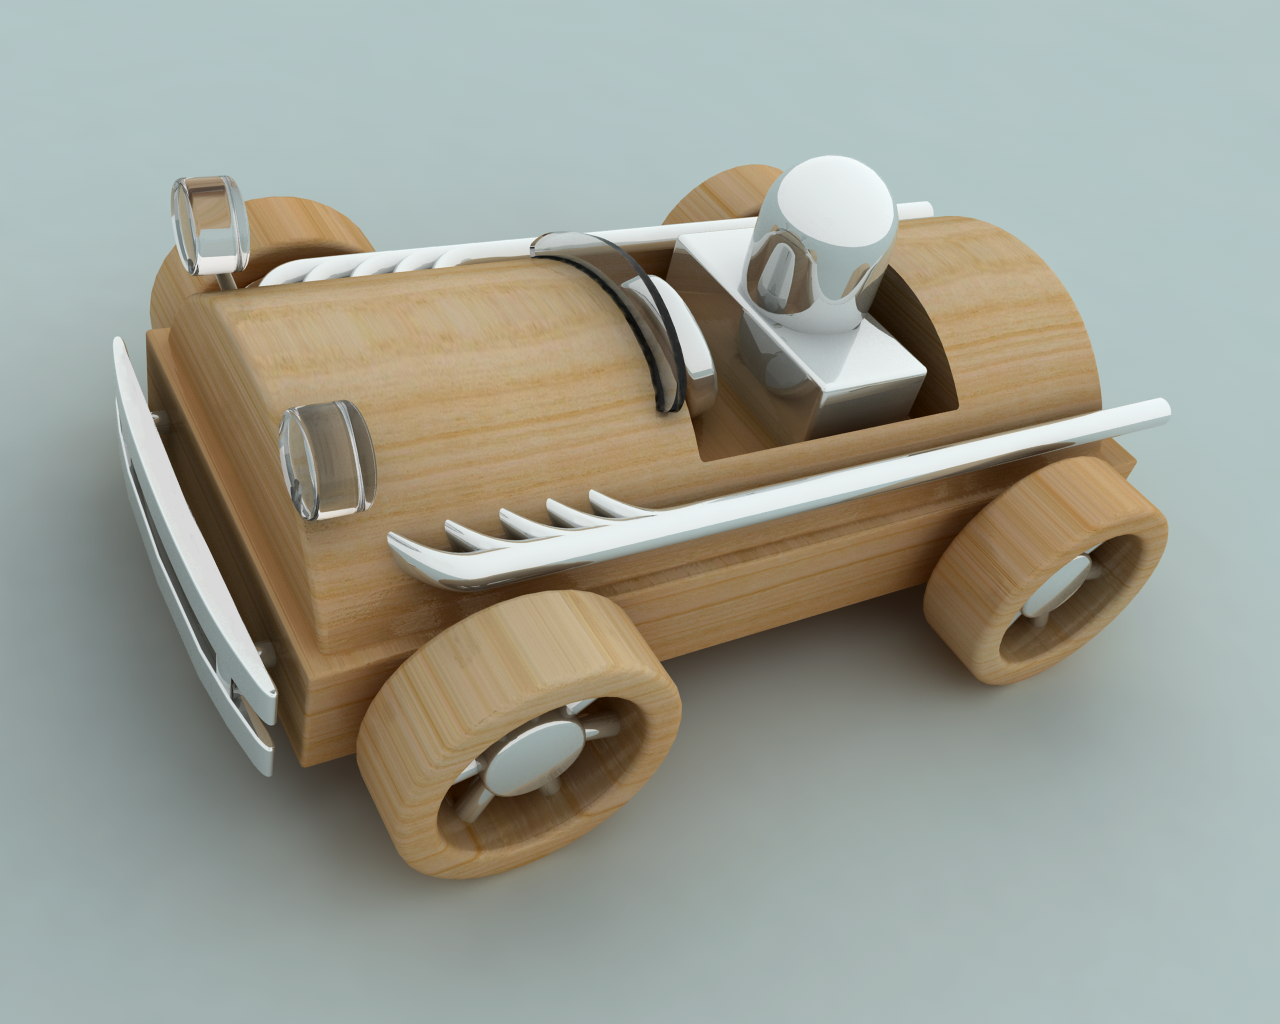 Wooden Toy Car for Print by drawzerRB on DeviantArt